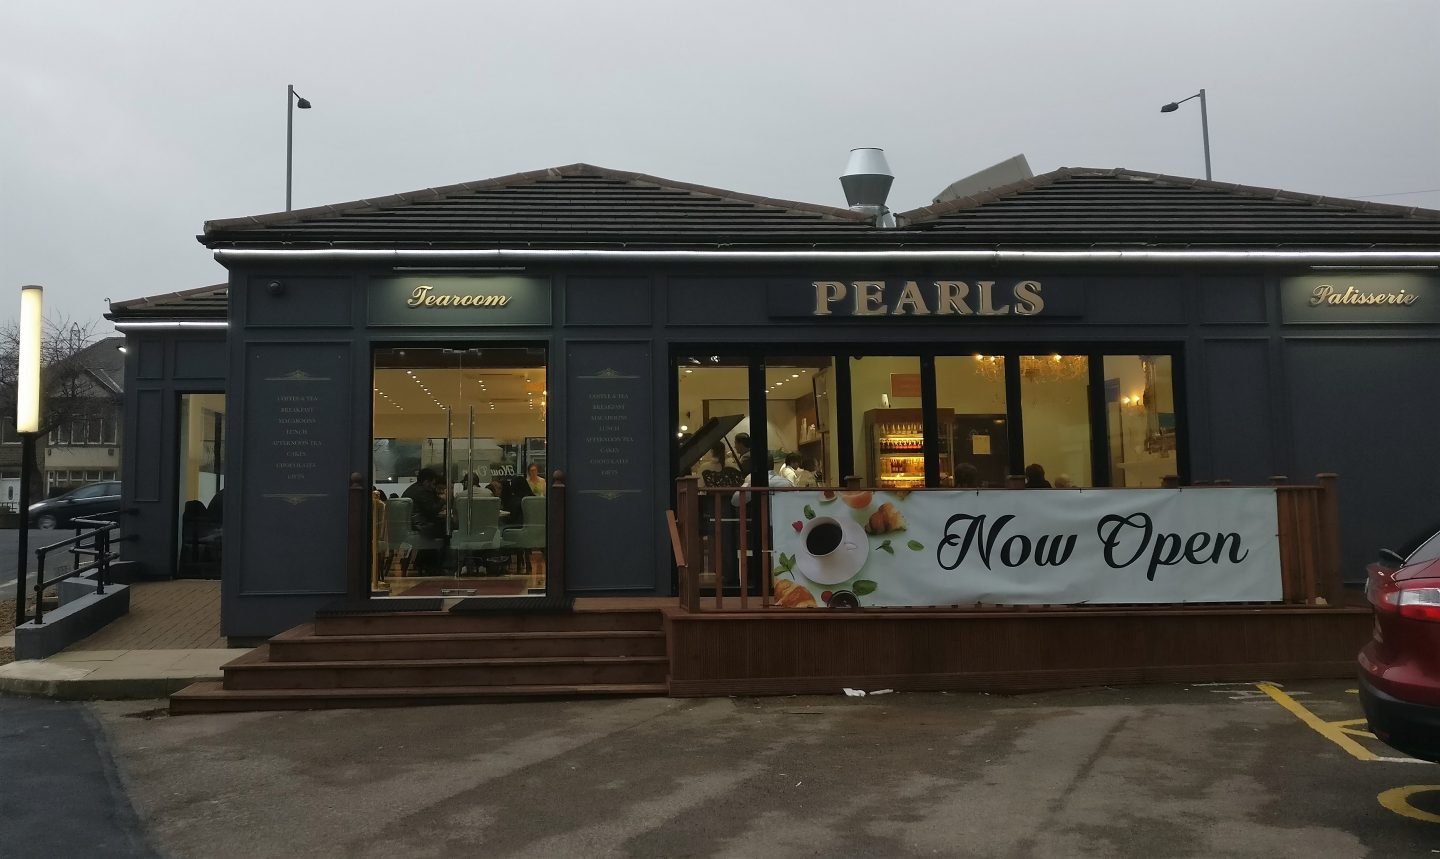 Pearls Tearoom & Patisserie Review